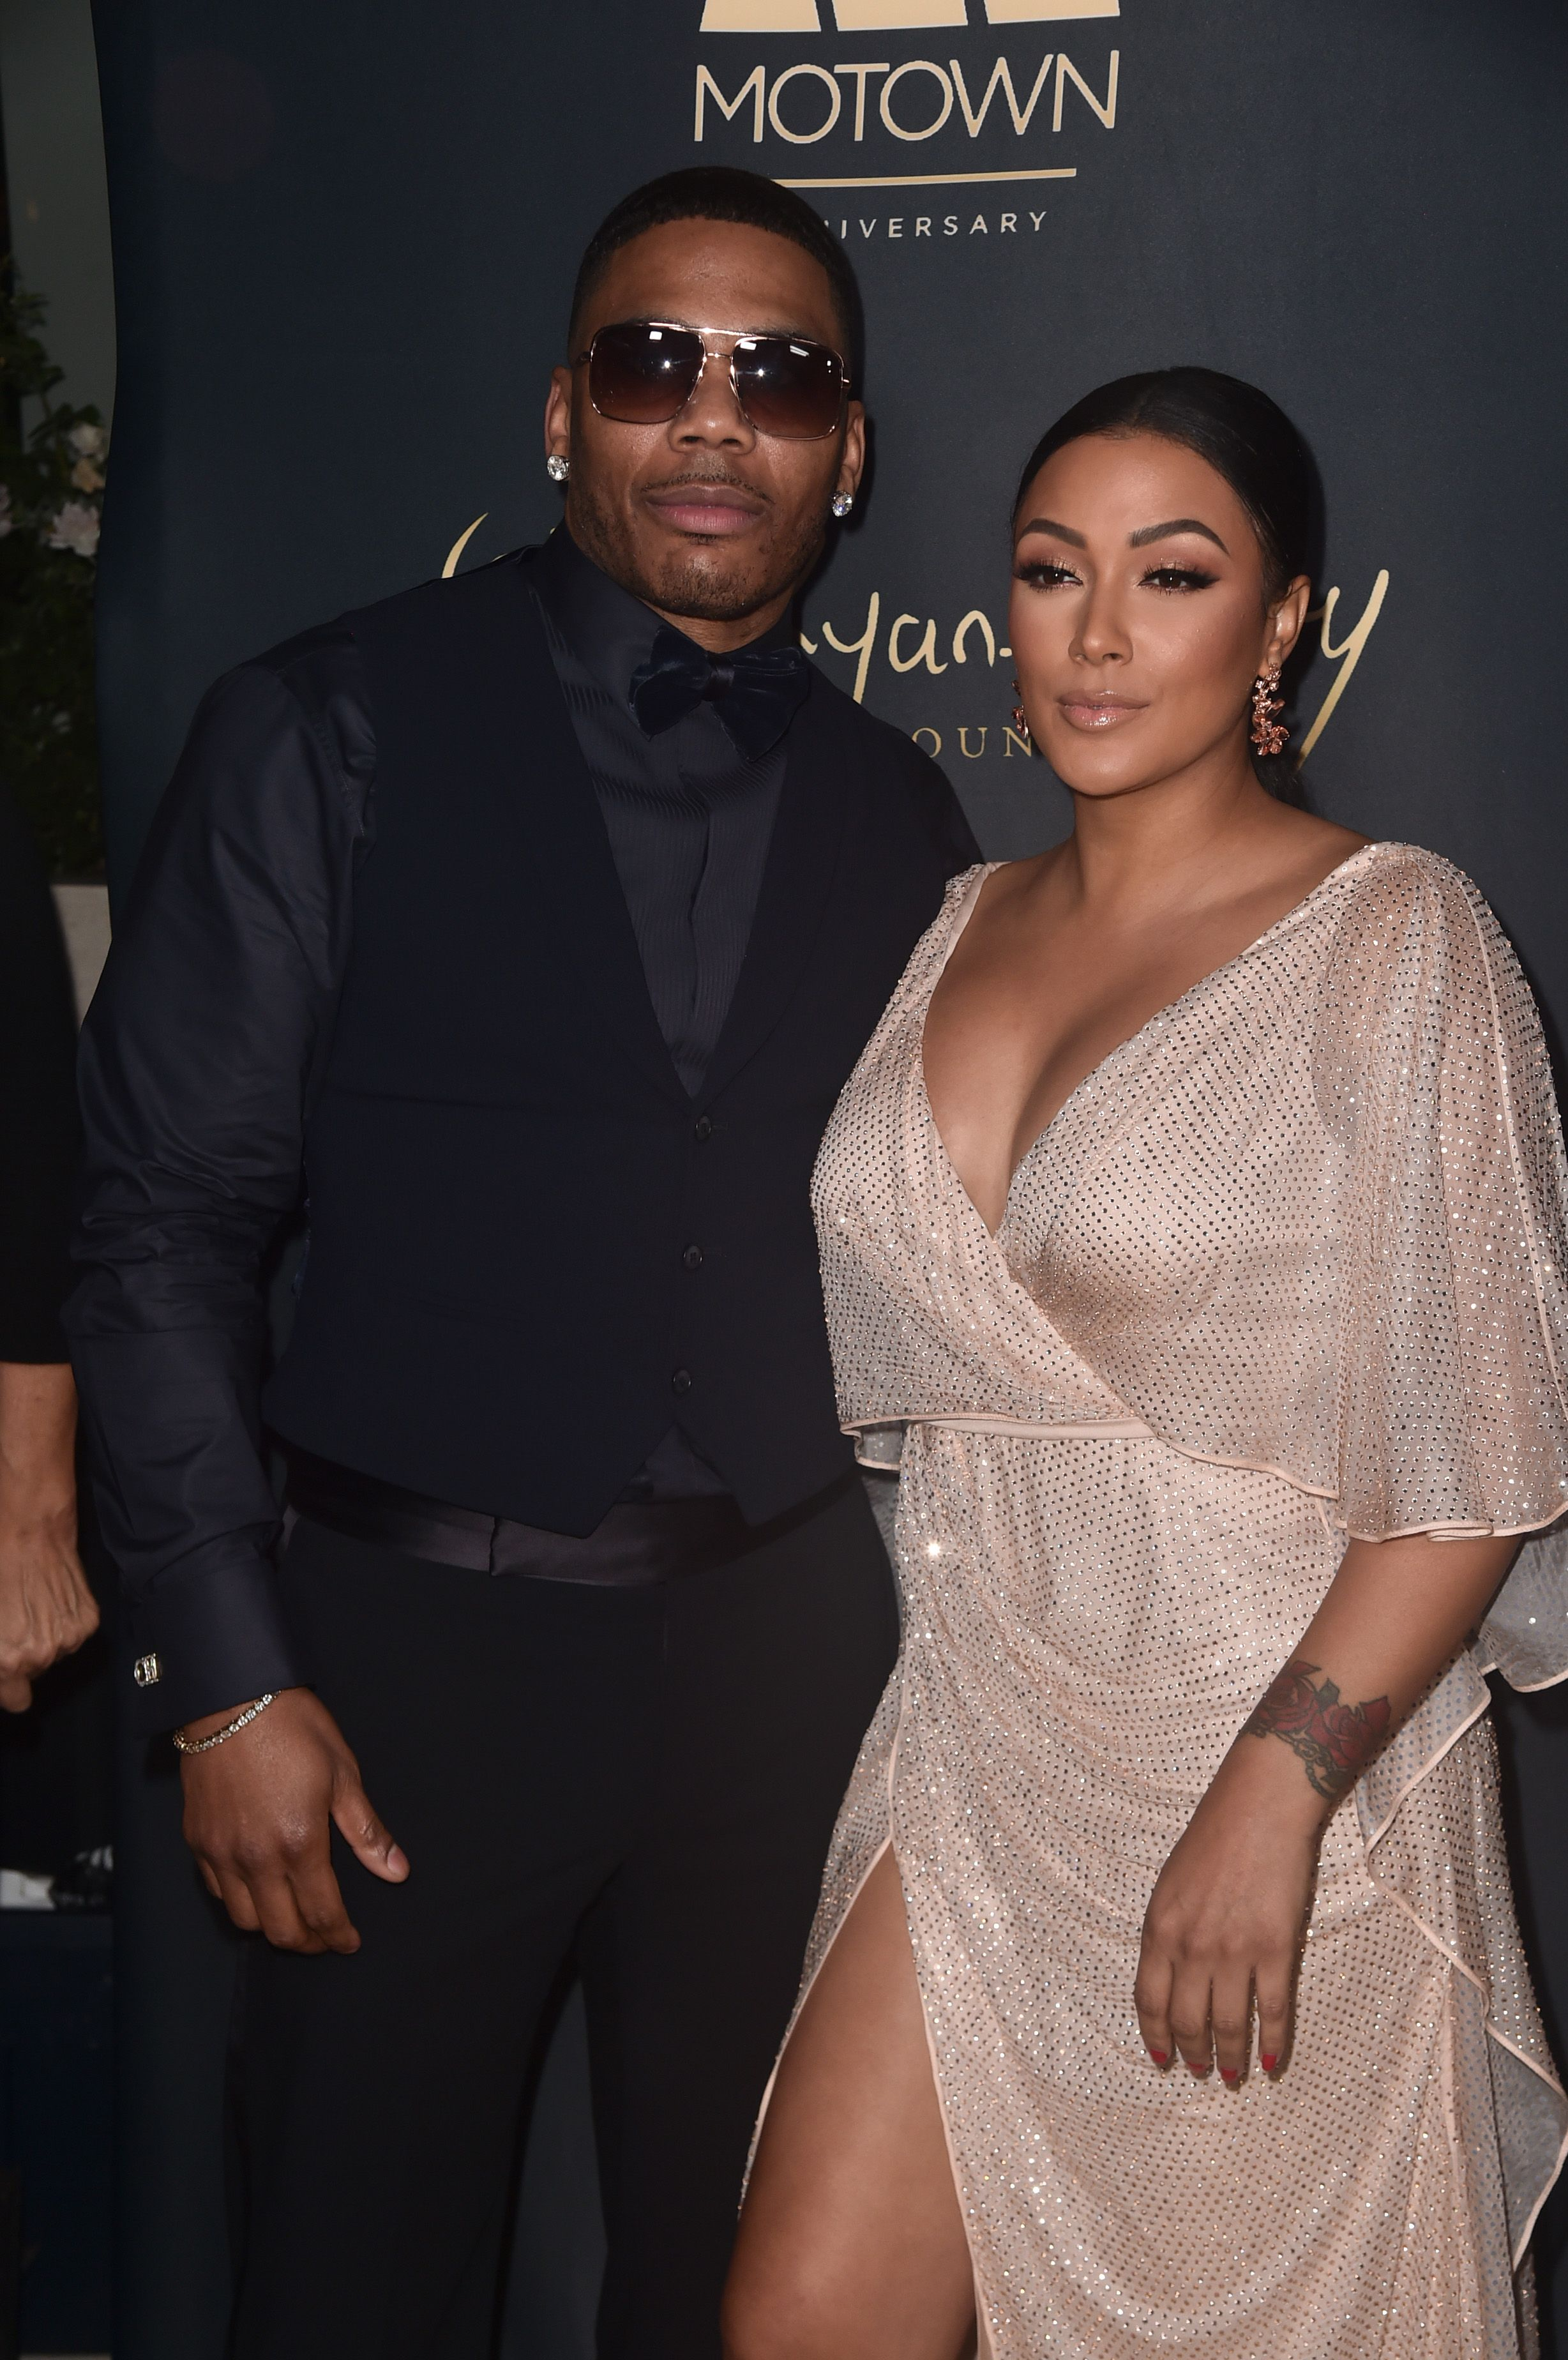 Nelly and Shantel Jackson at the Ryan Gordy Foundation's celebration of 60 Years of Motown at Waldorf Astoria Beverly Hills on November 11, 2019.   Photo: Getty Images